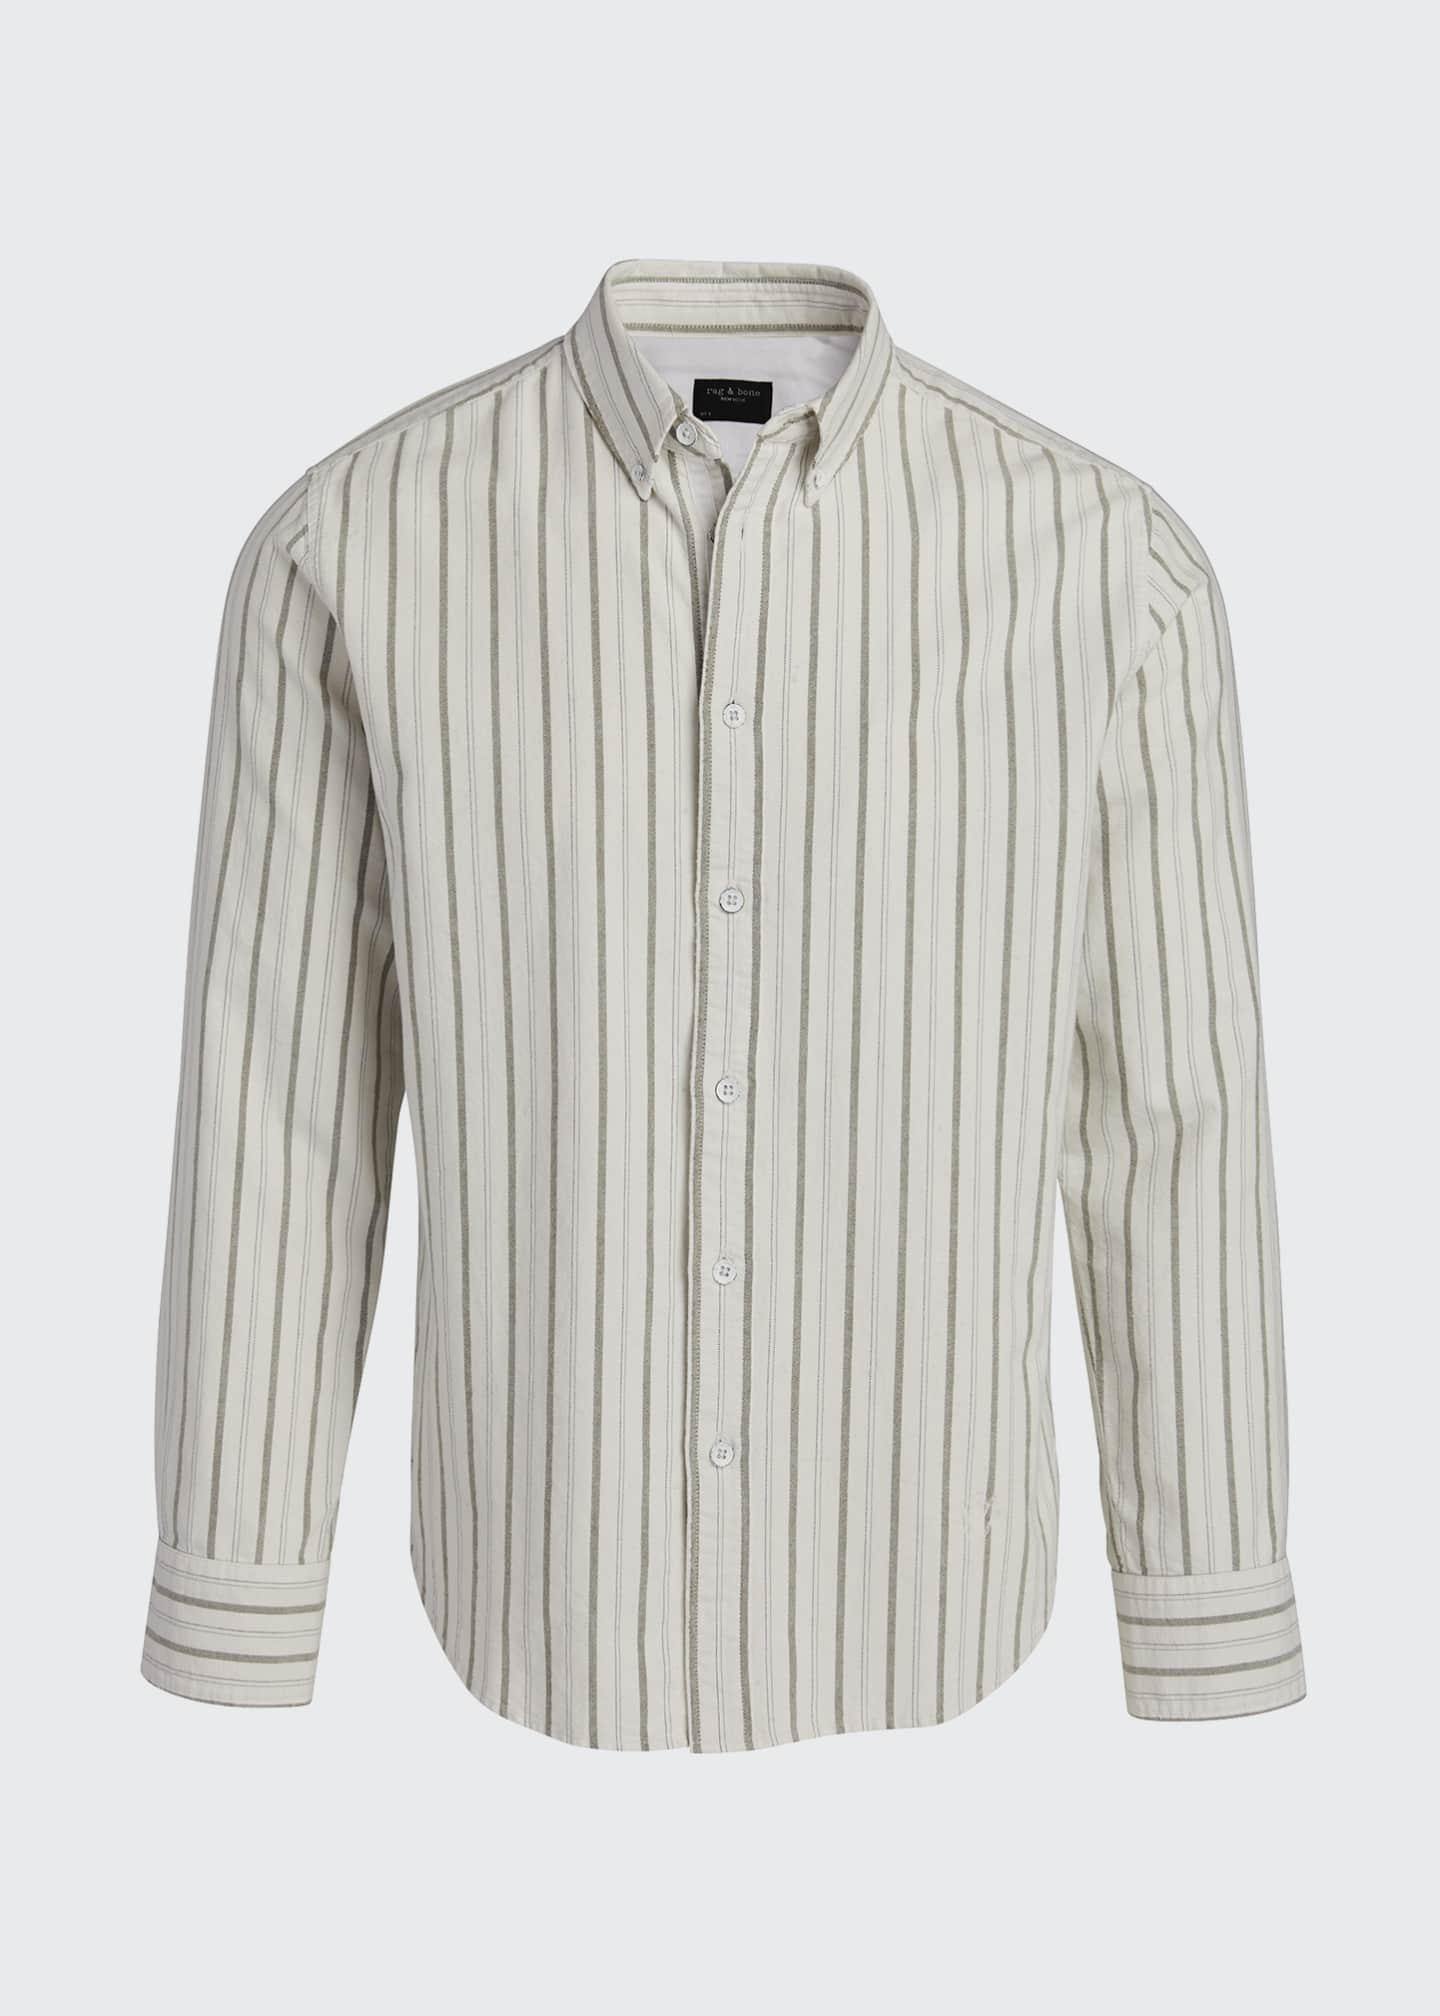 Image 5 of 5: Men's Tomlin Striped Oxford Sport Shirt